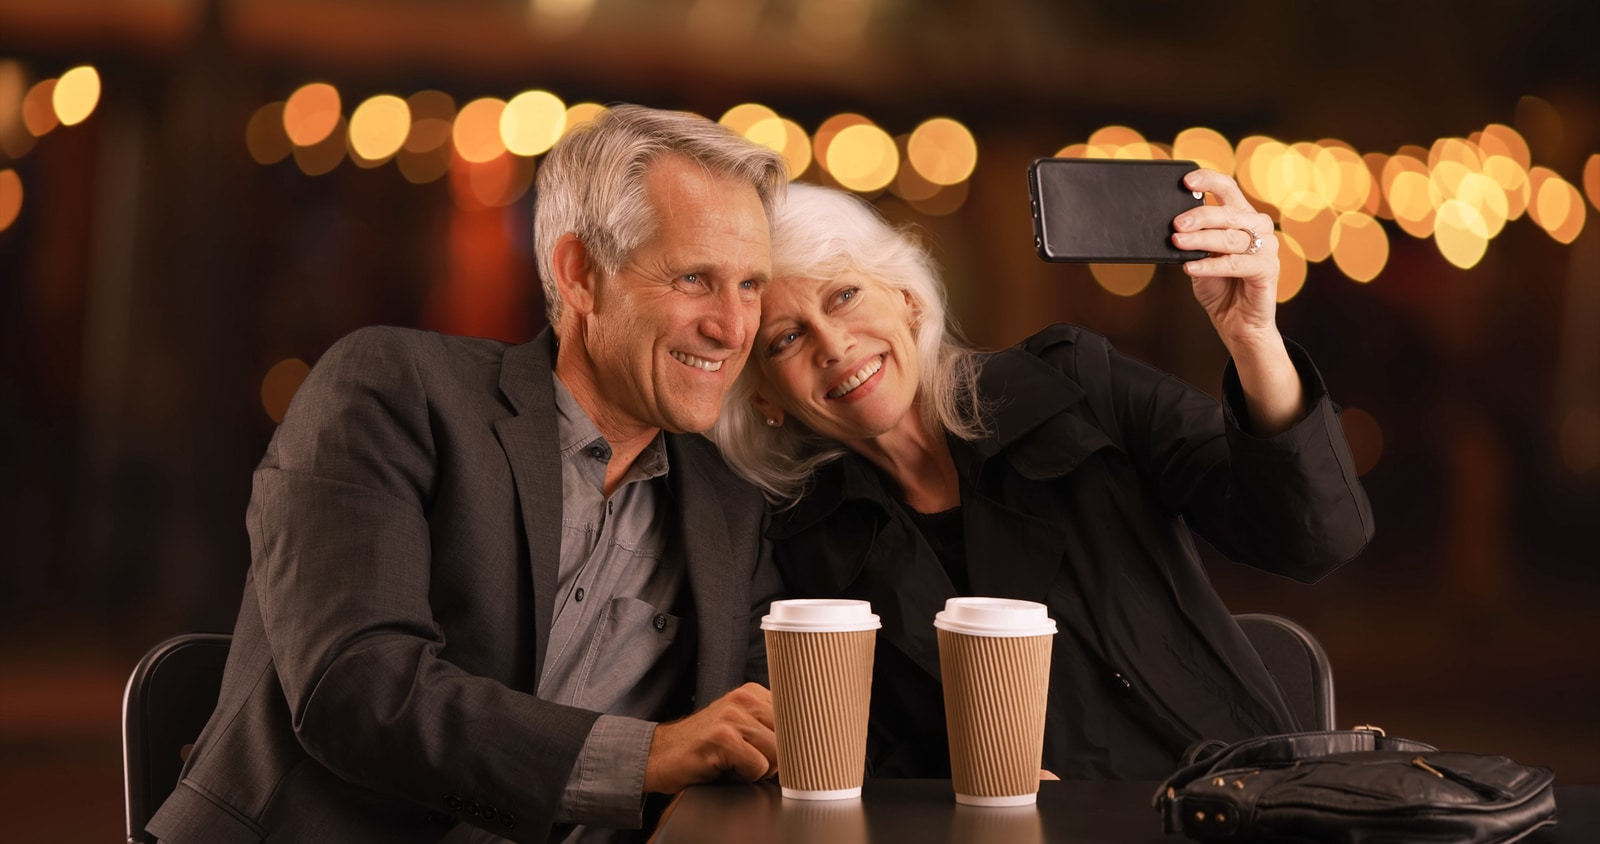 Senior couple out on an evening date taking selfies with smartphone